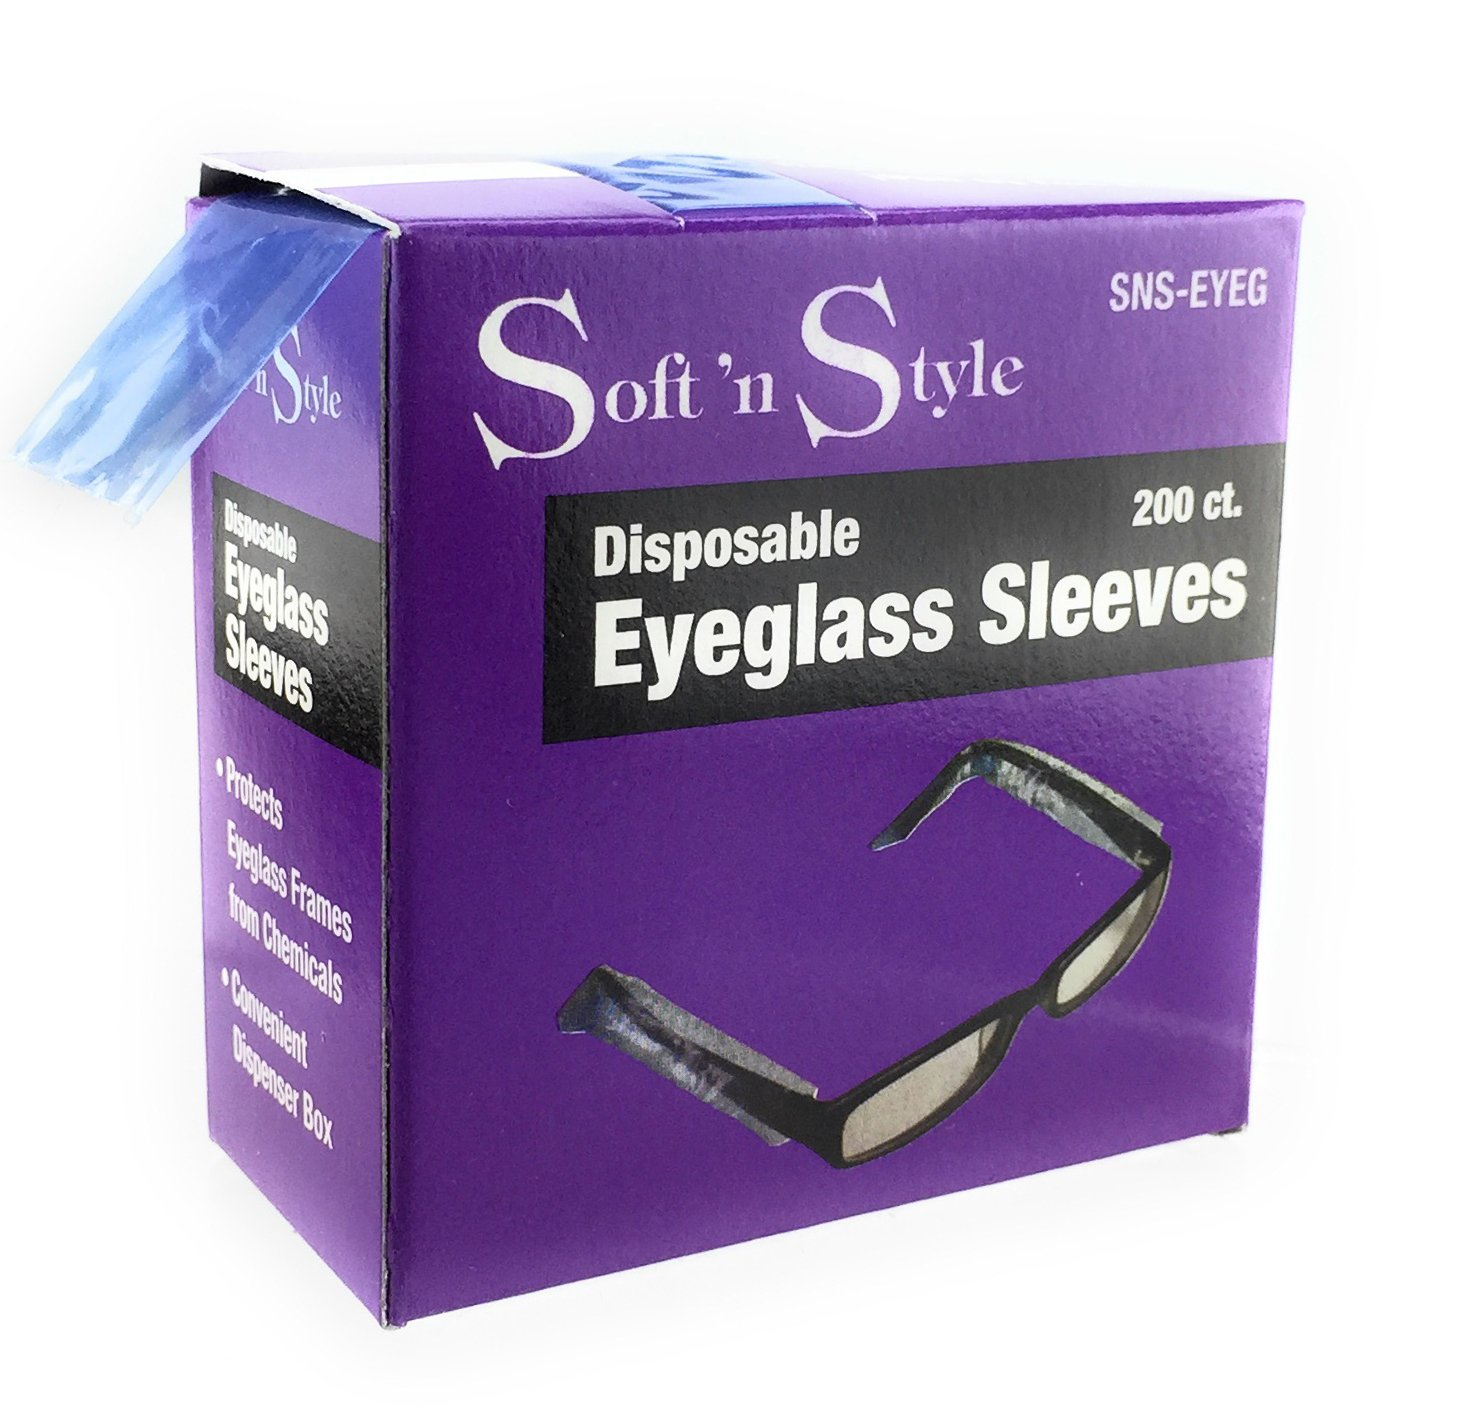 Soft 'N Style Disposable Eyeglass Sleeves